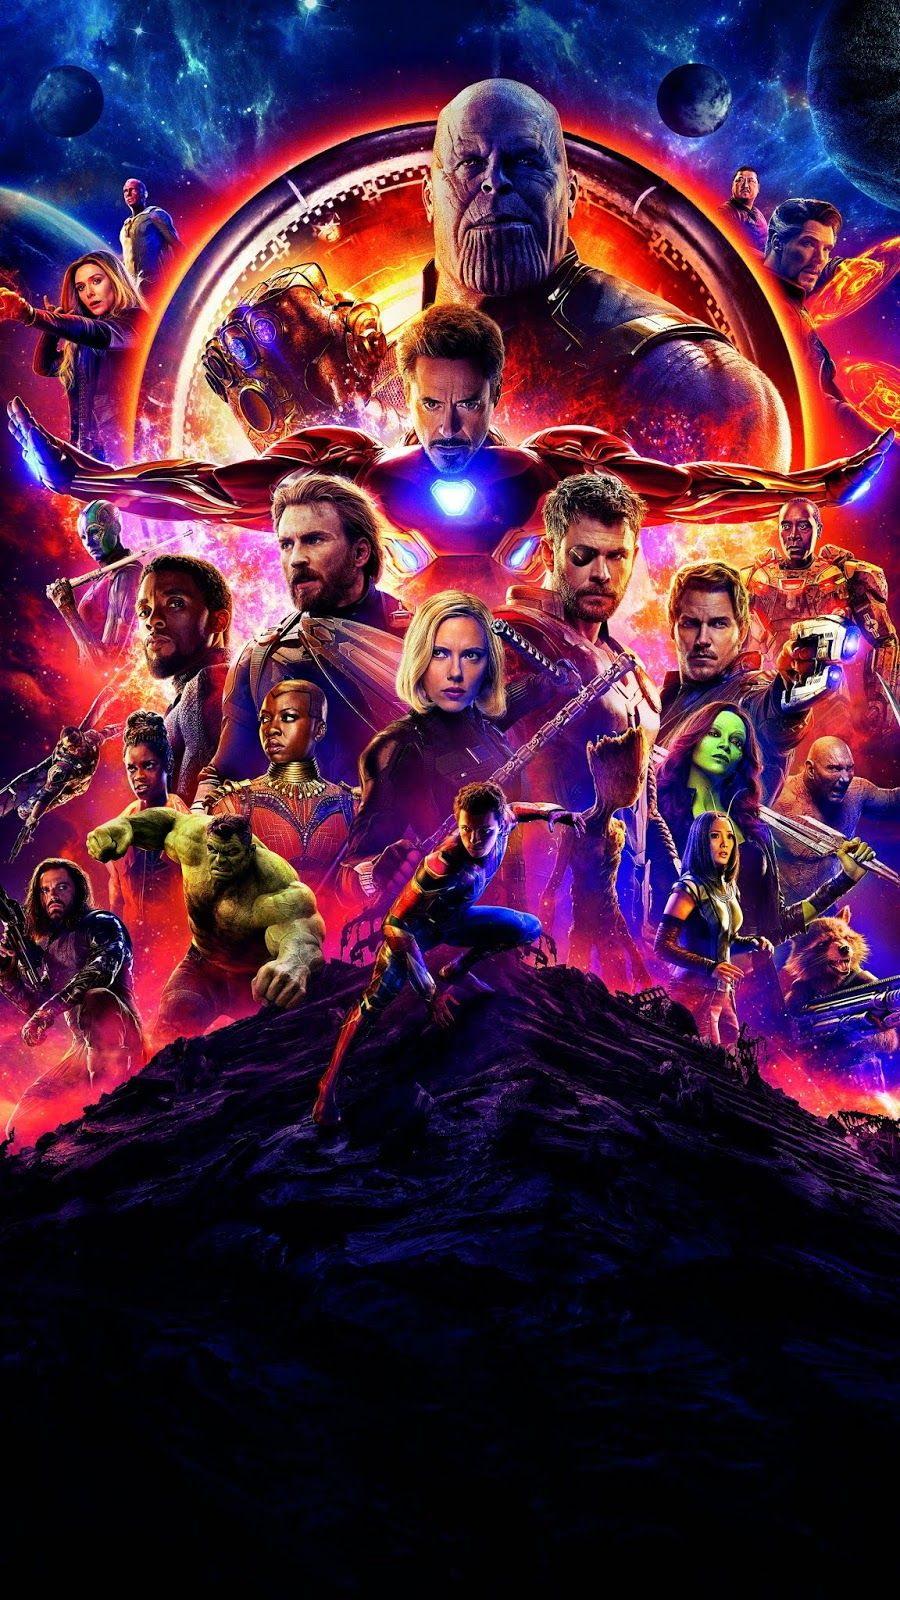 Avengers Infinity War Textless Hd Wallpaper Wallpaper Iphone Android Avengers Poster Marvel Background Marvel Posters